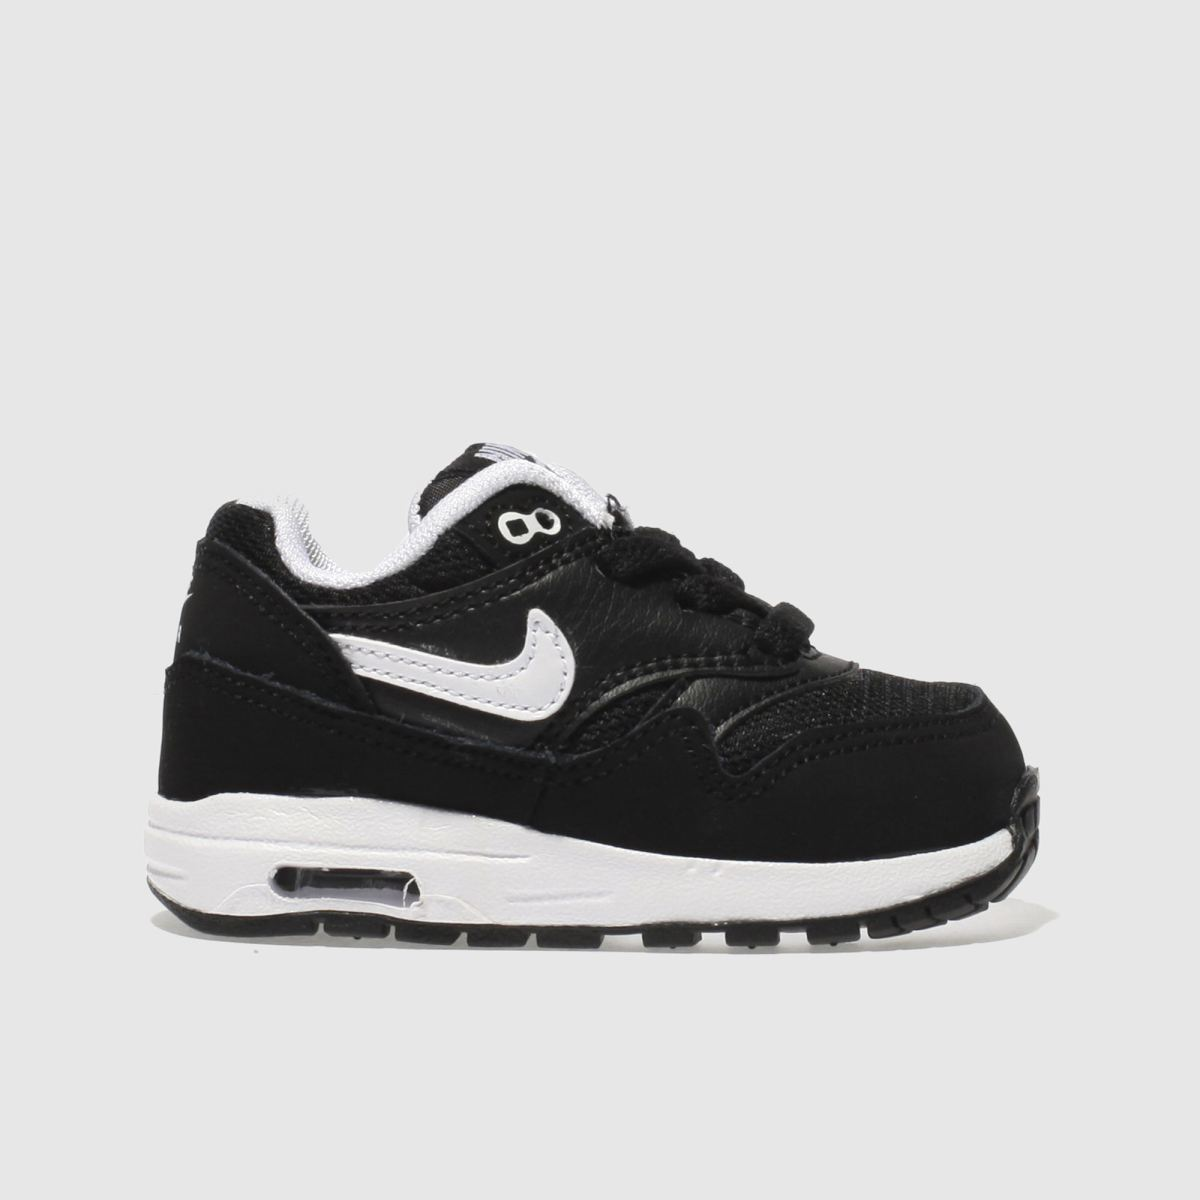 Nike Black & White Air Max 1 Boys Toddler Trainers